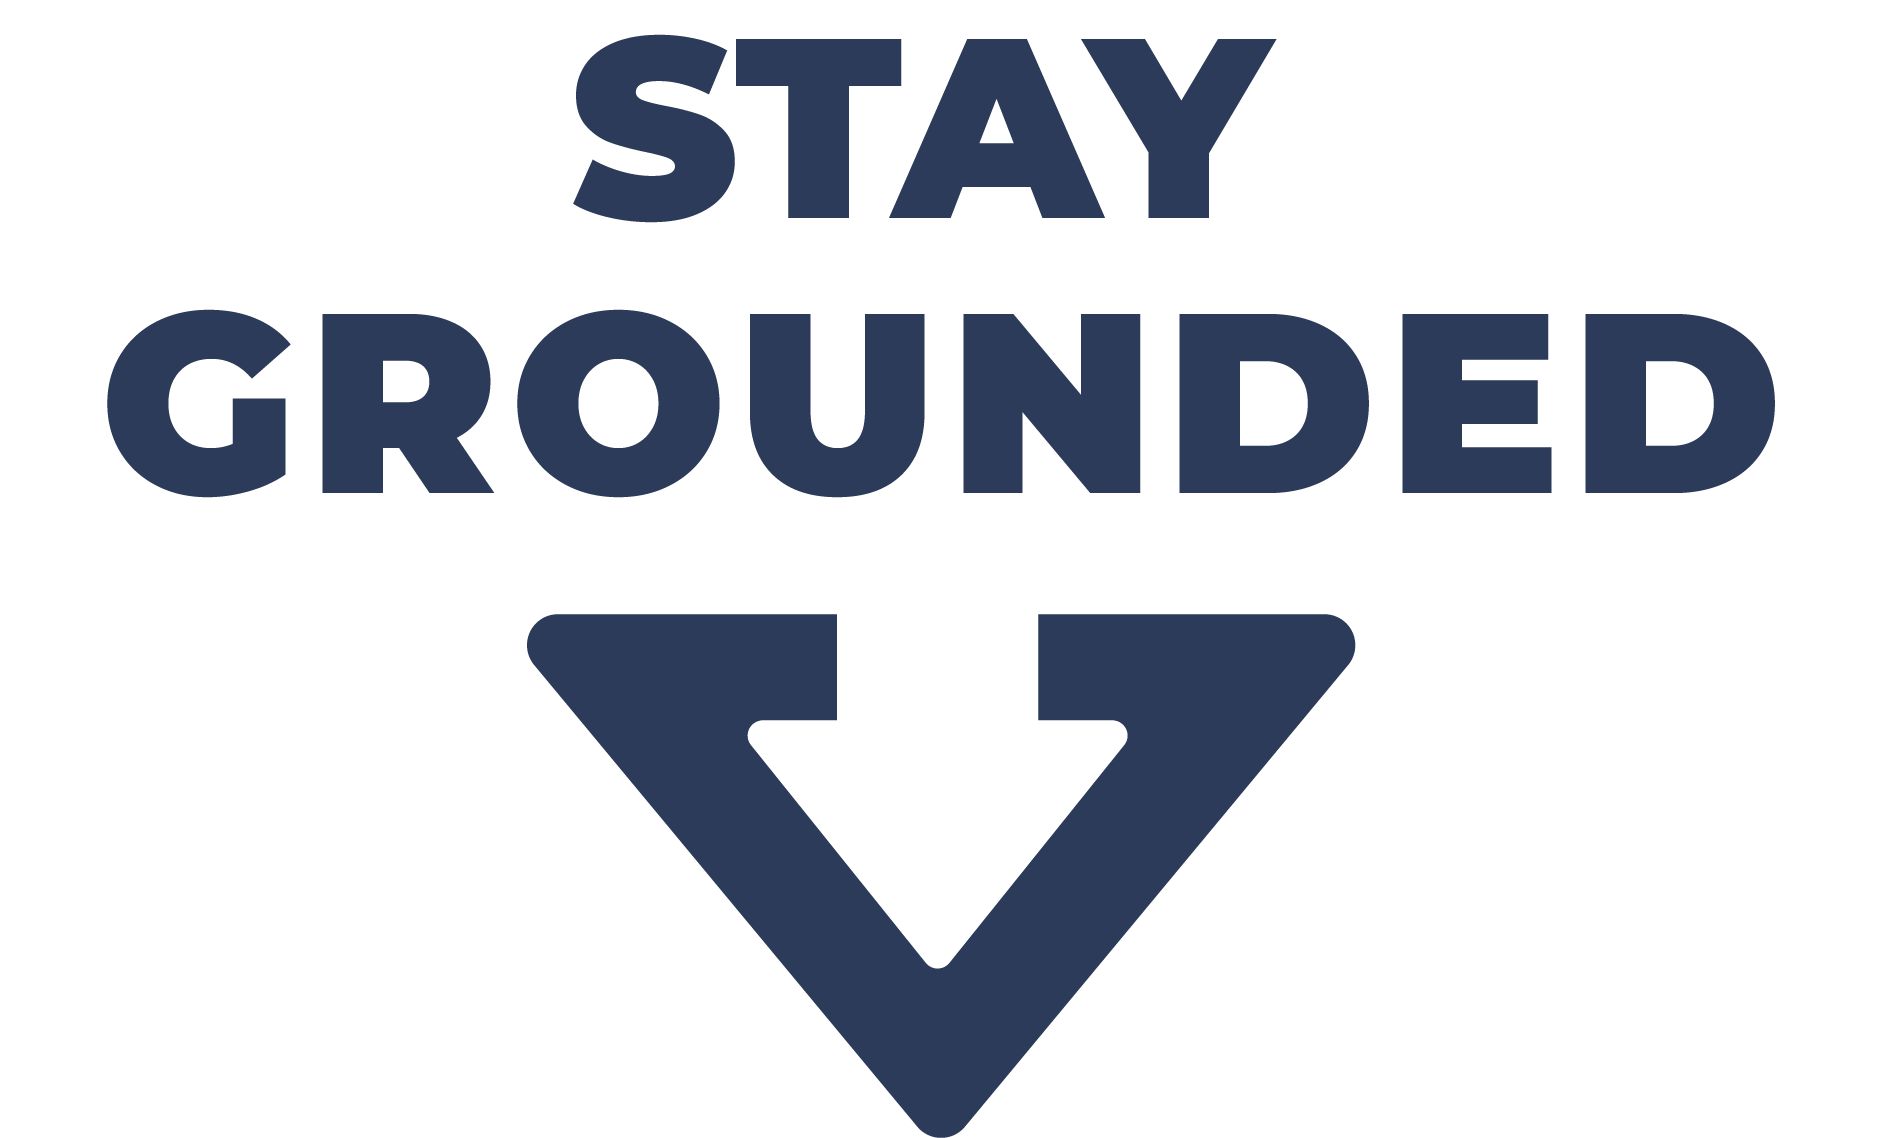 https://stay-grounded.org/